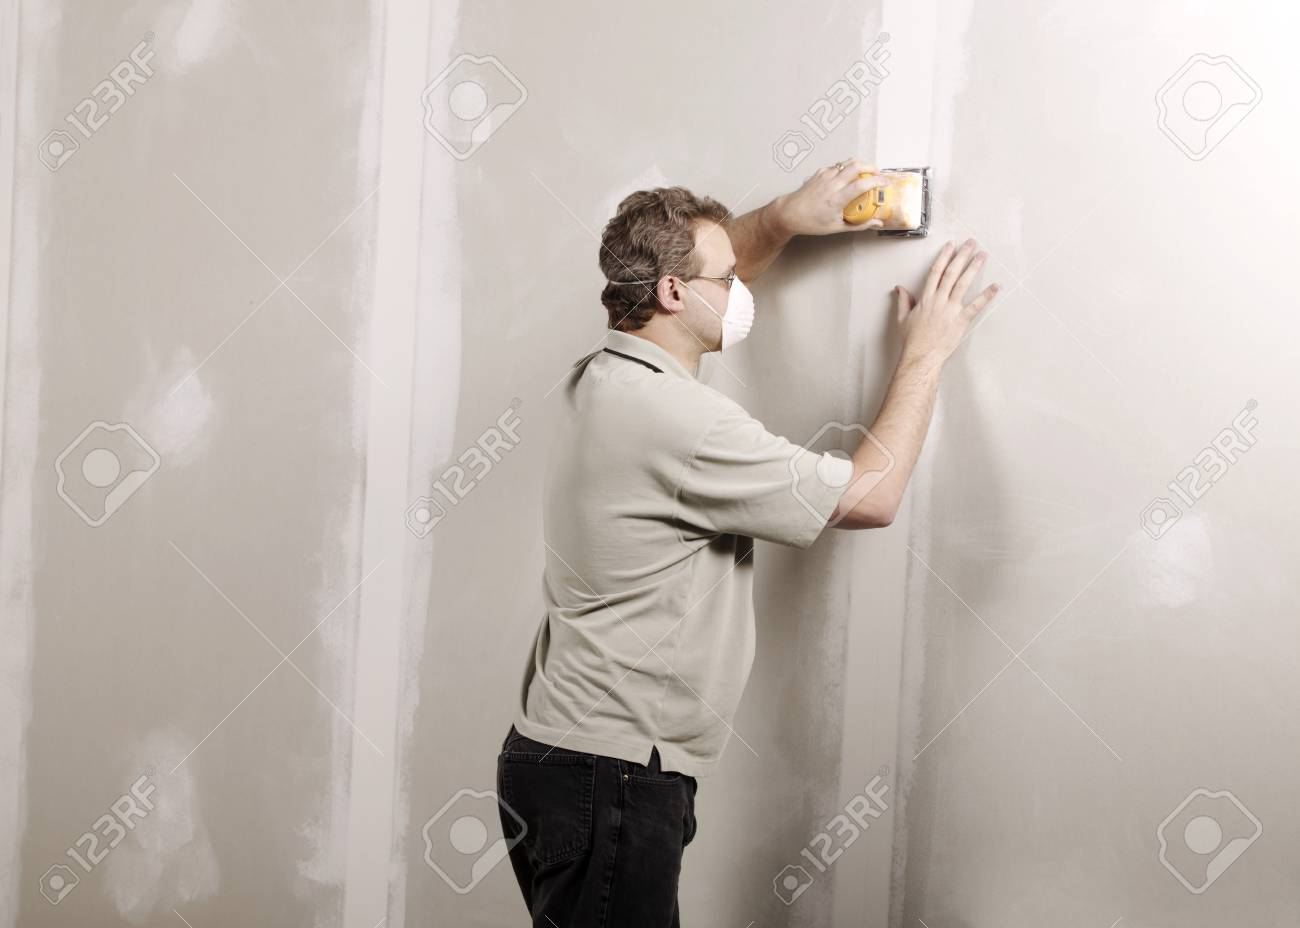 Man using a sander Stock Photo - 8241796